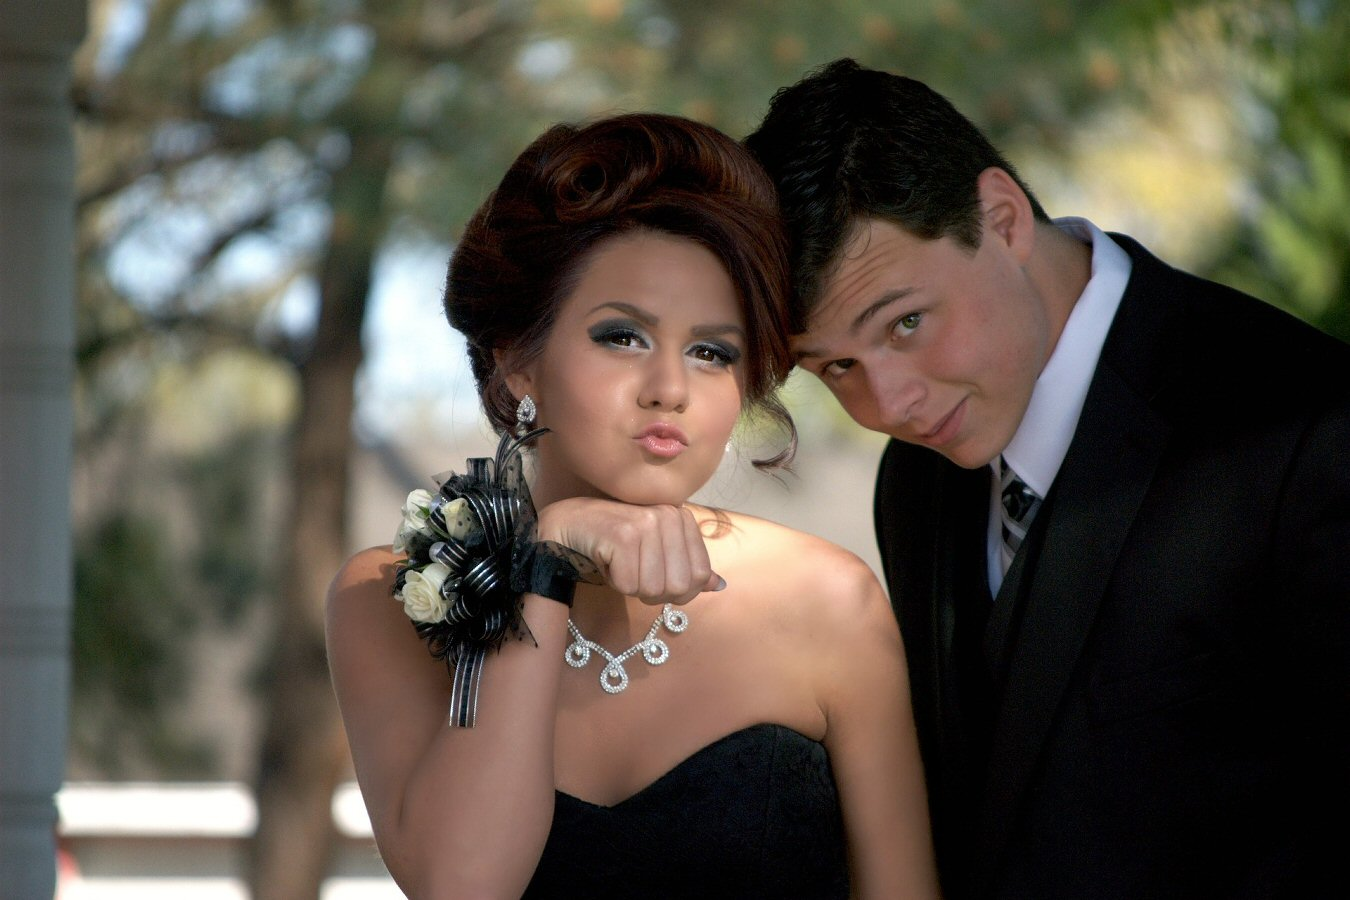 teens ready for prom